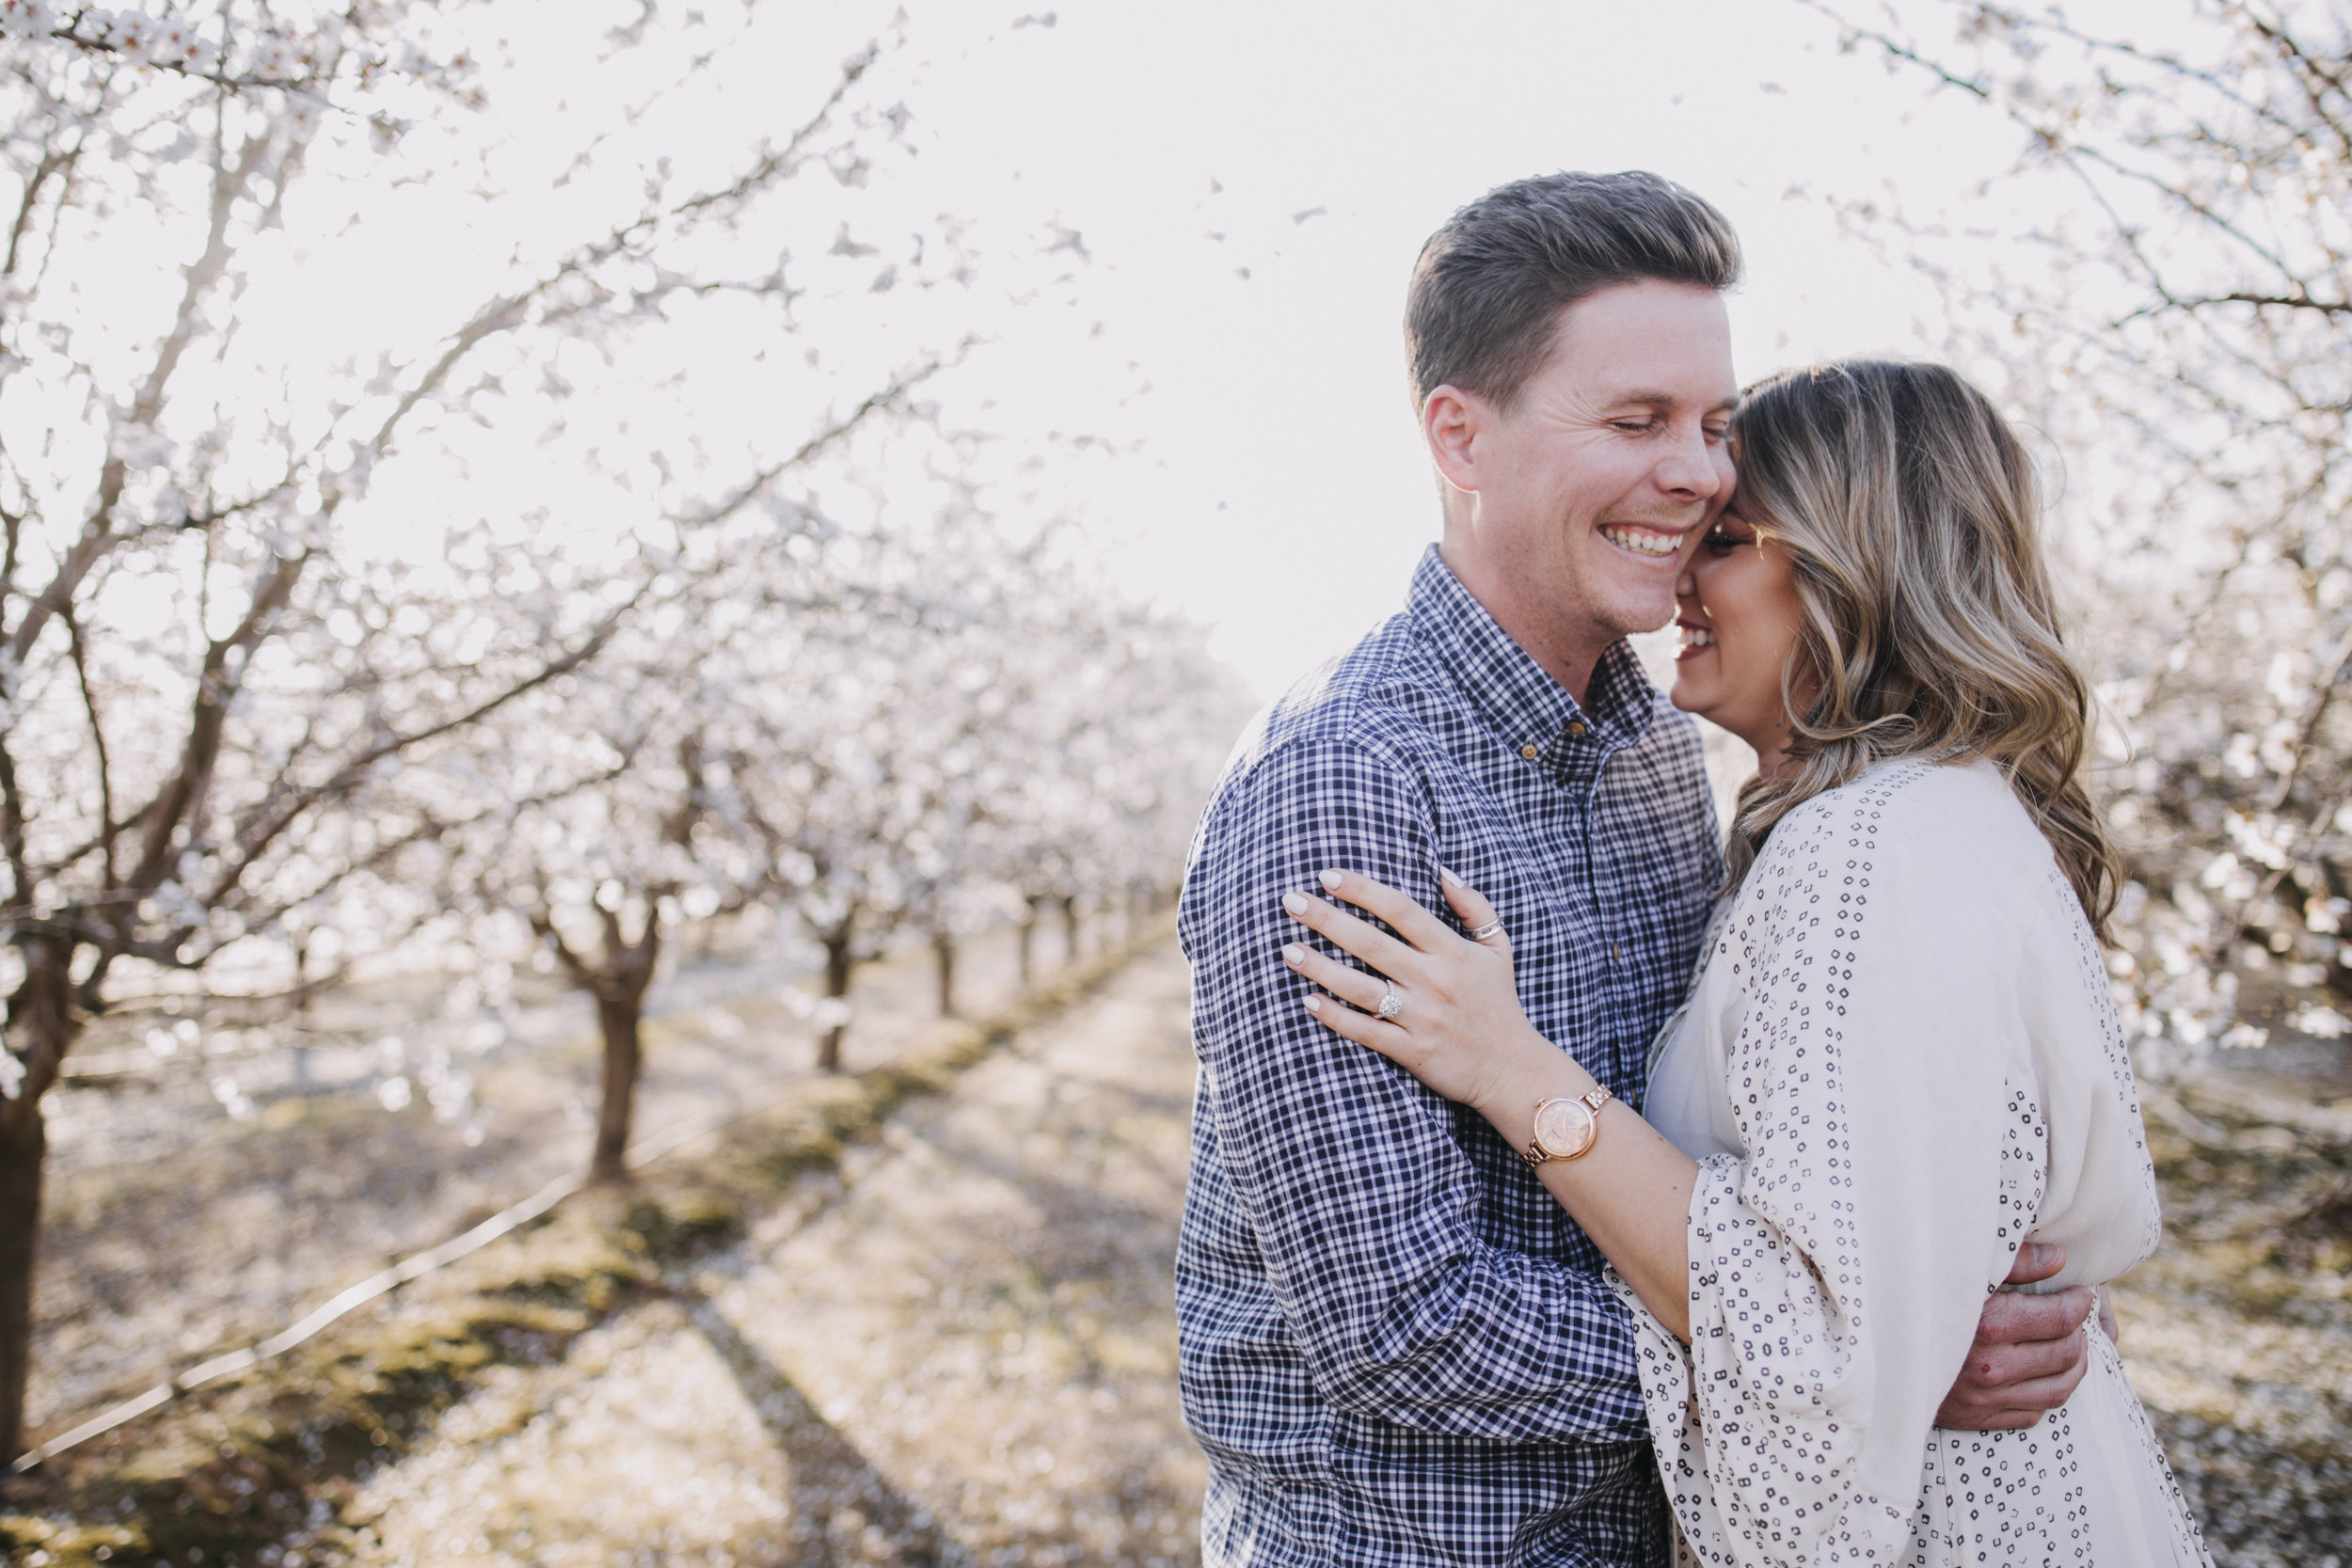 Man and his fiance candidly laughing while surrounded by blossom trees